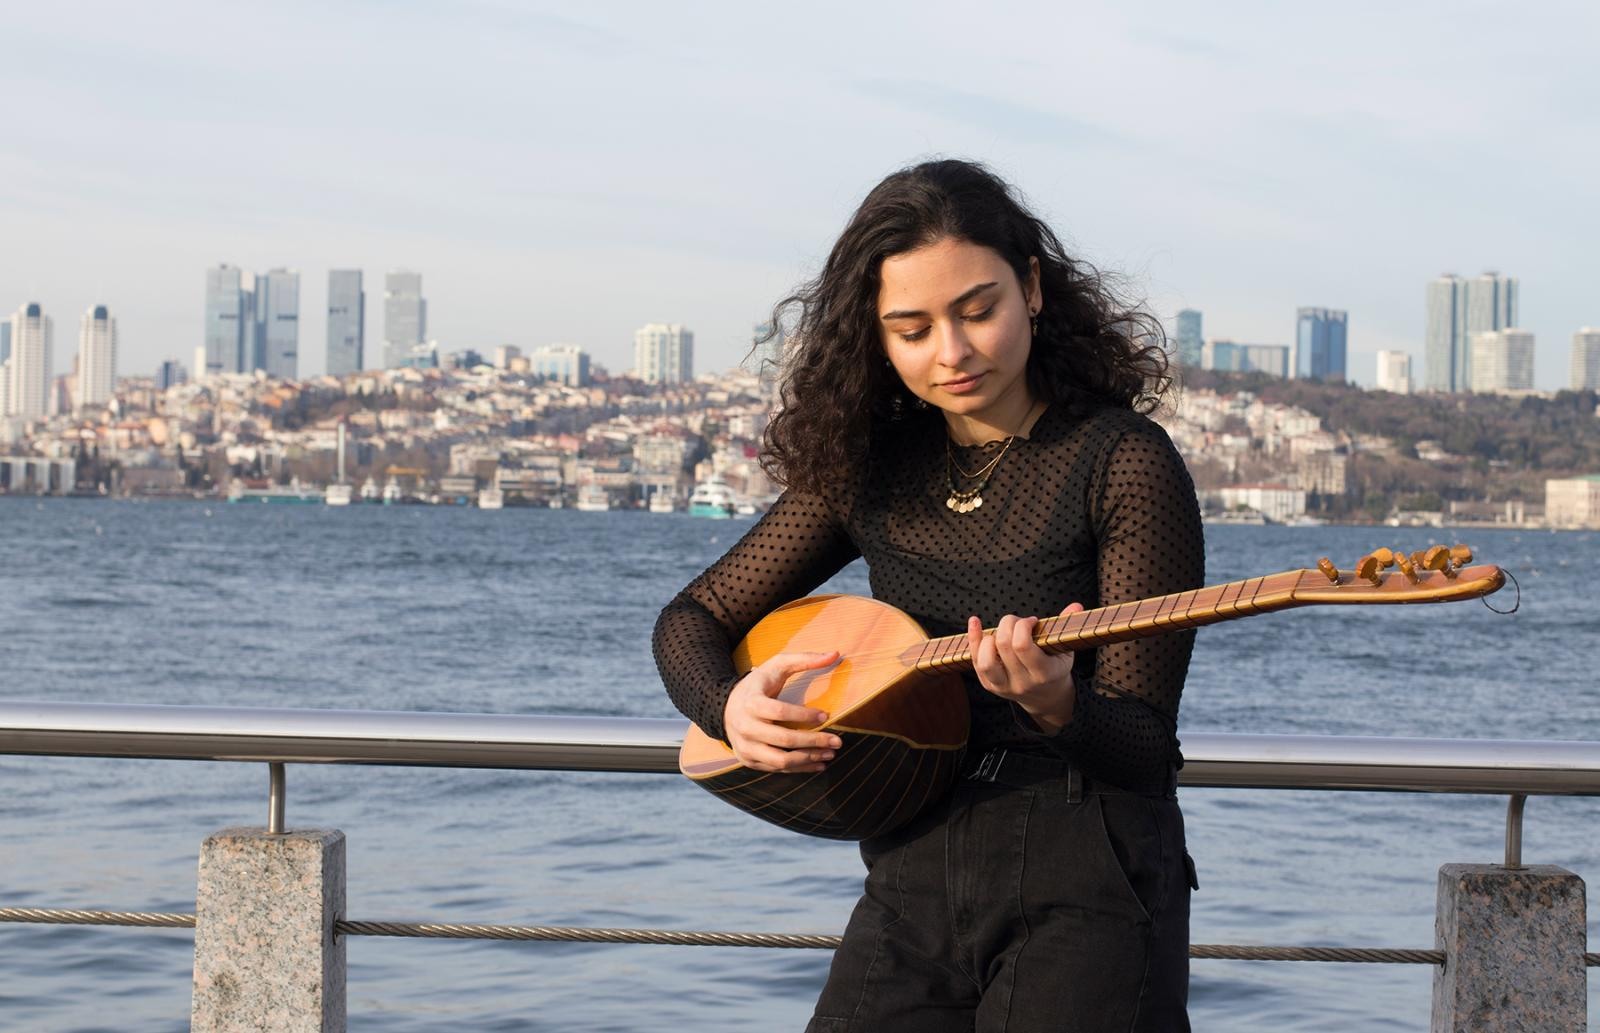 A woman plays a stringed instrument, with water and a city skyline behind her.